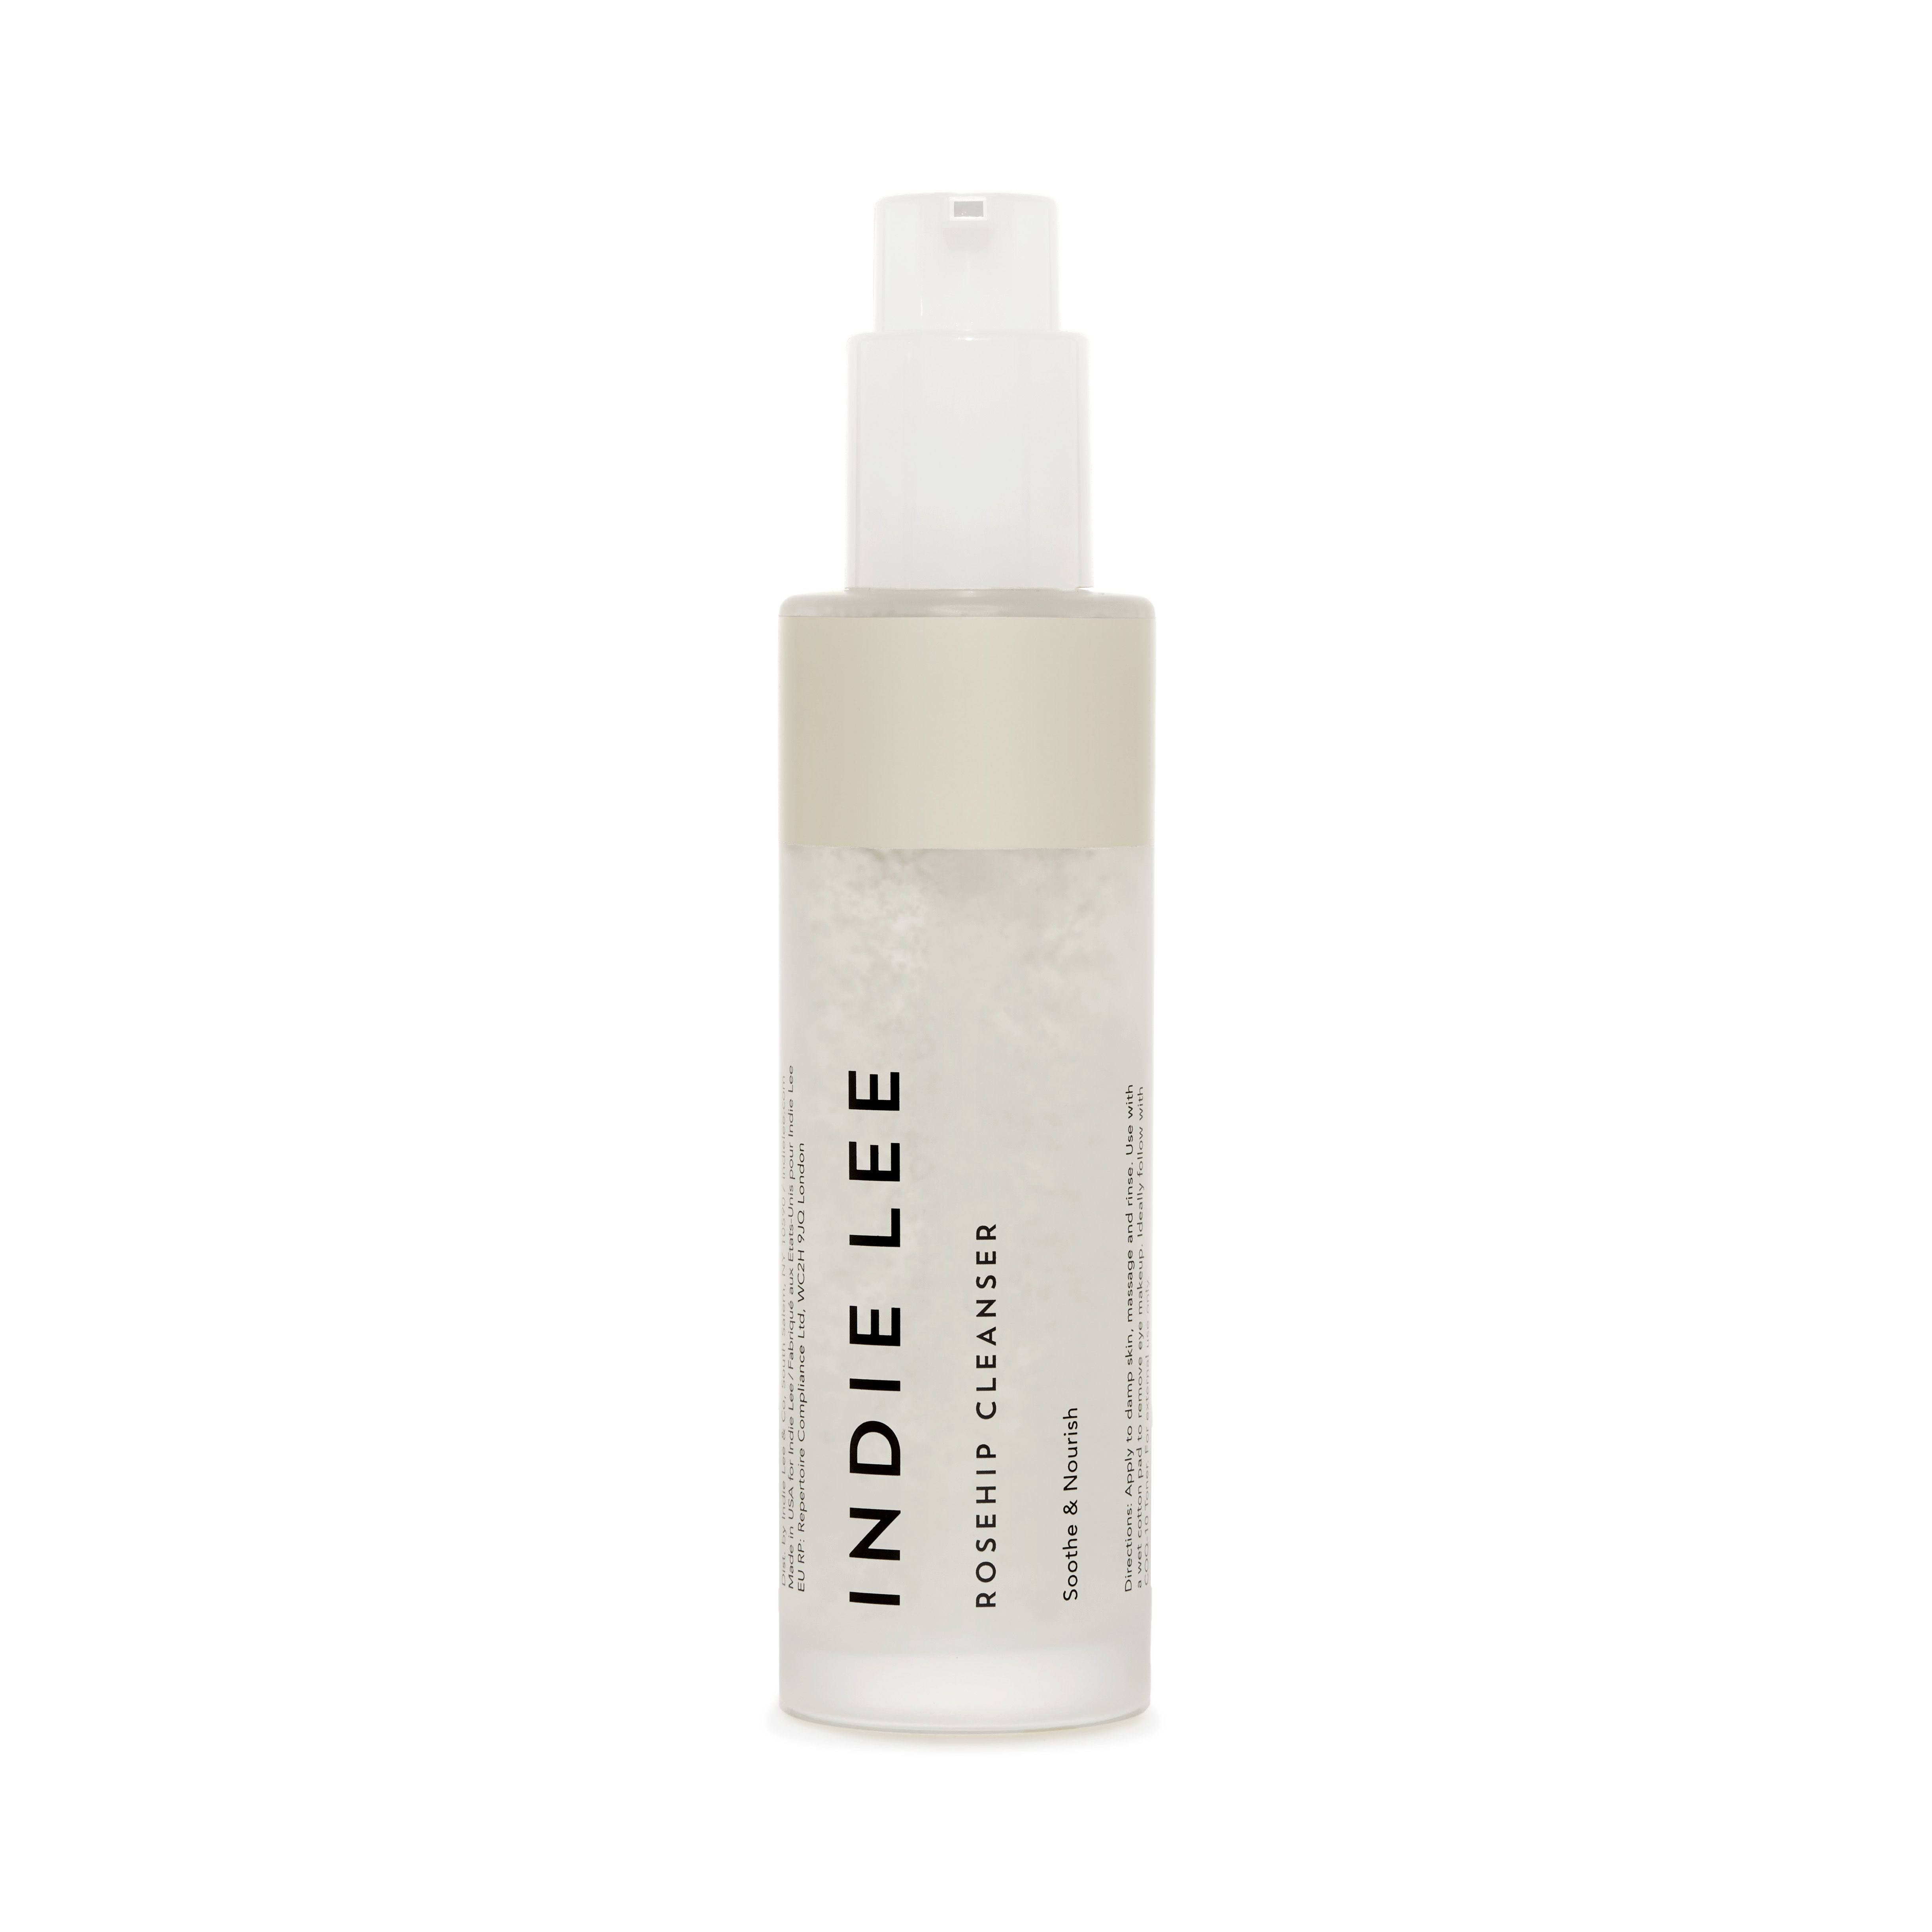 Rosehip Cleanser (With images) Indie lee, Cleanser, Eye